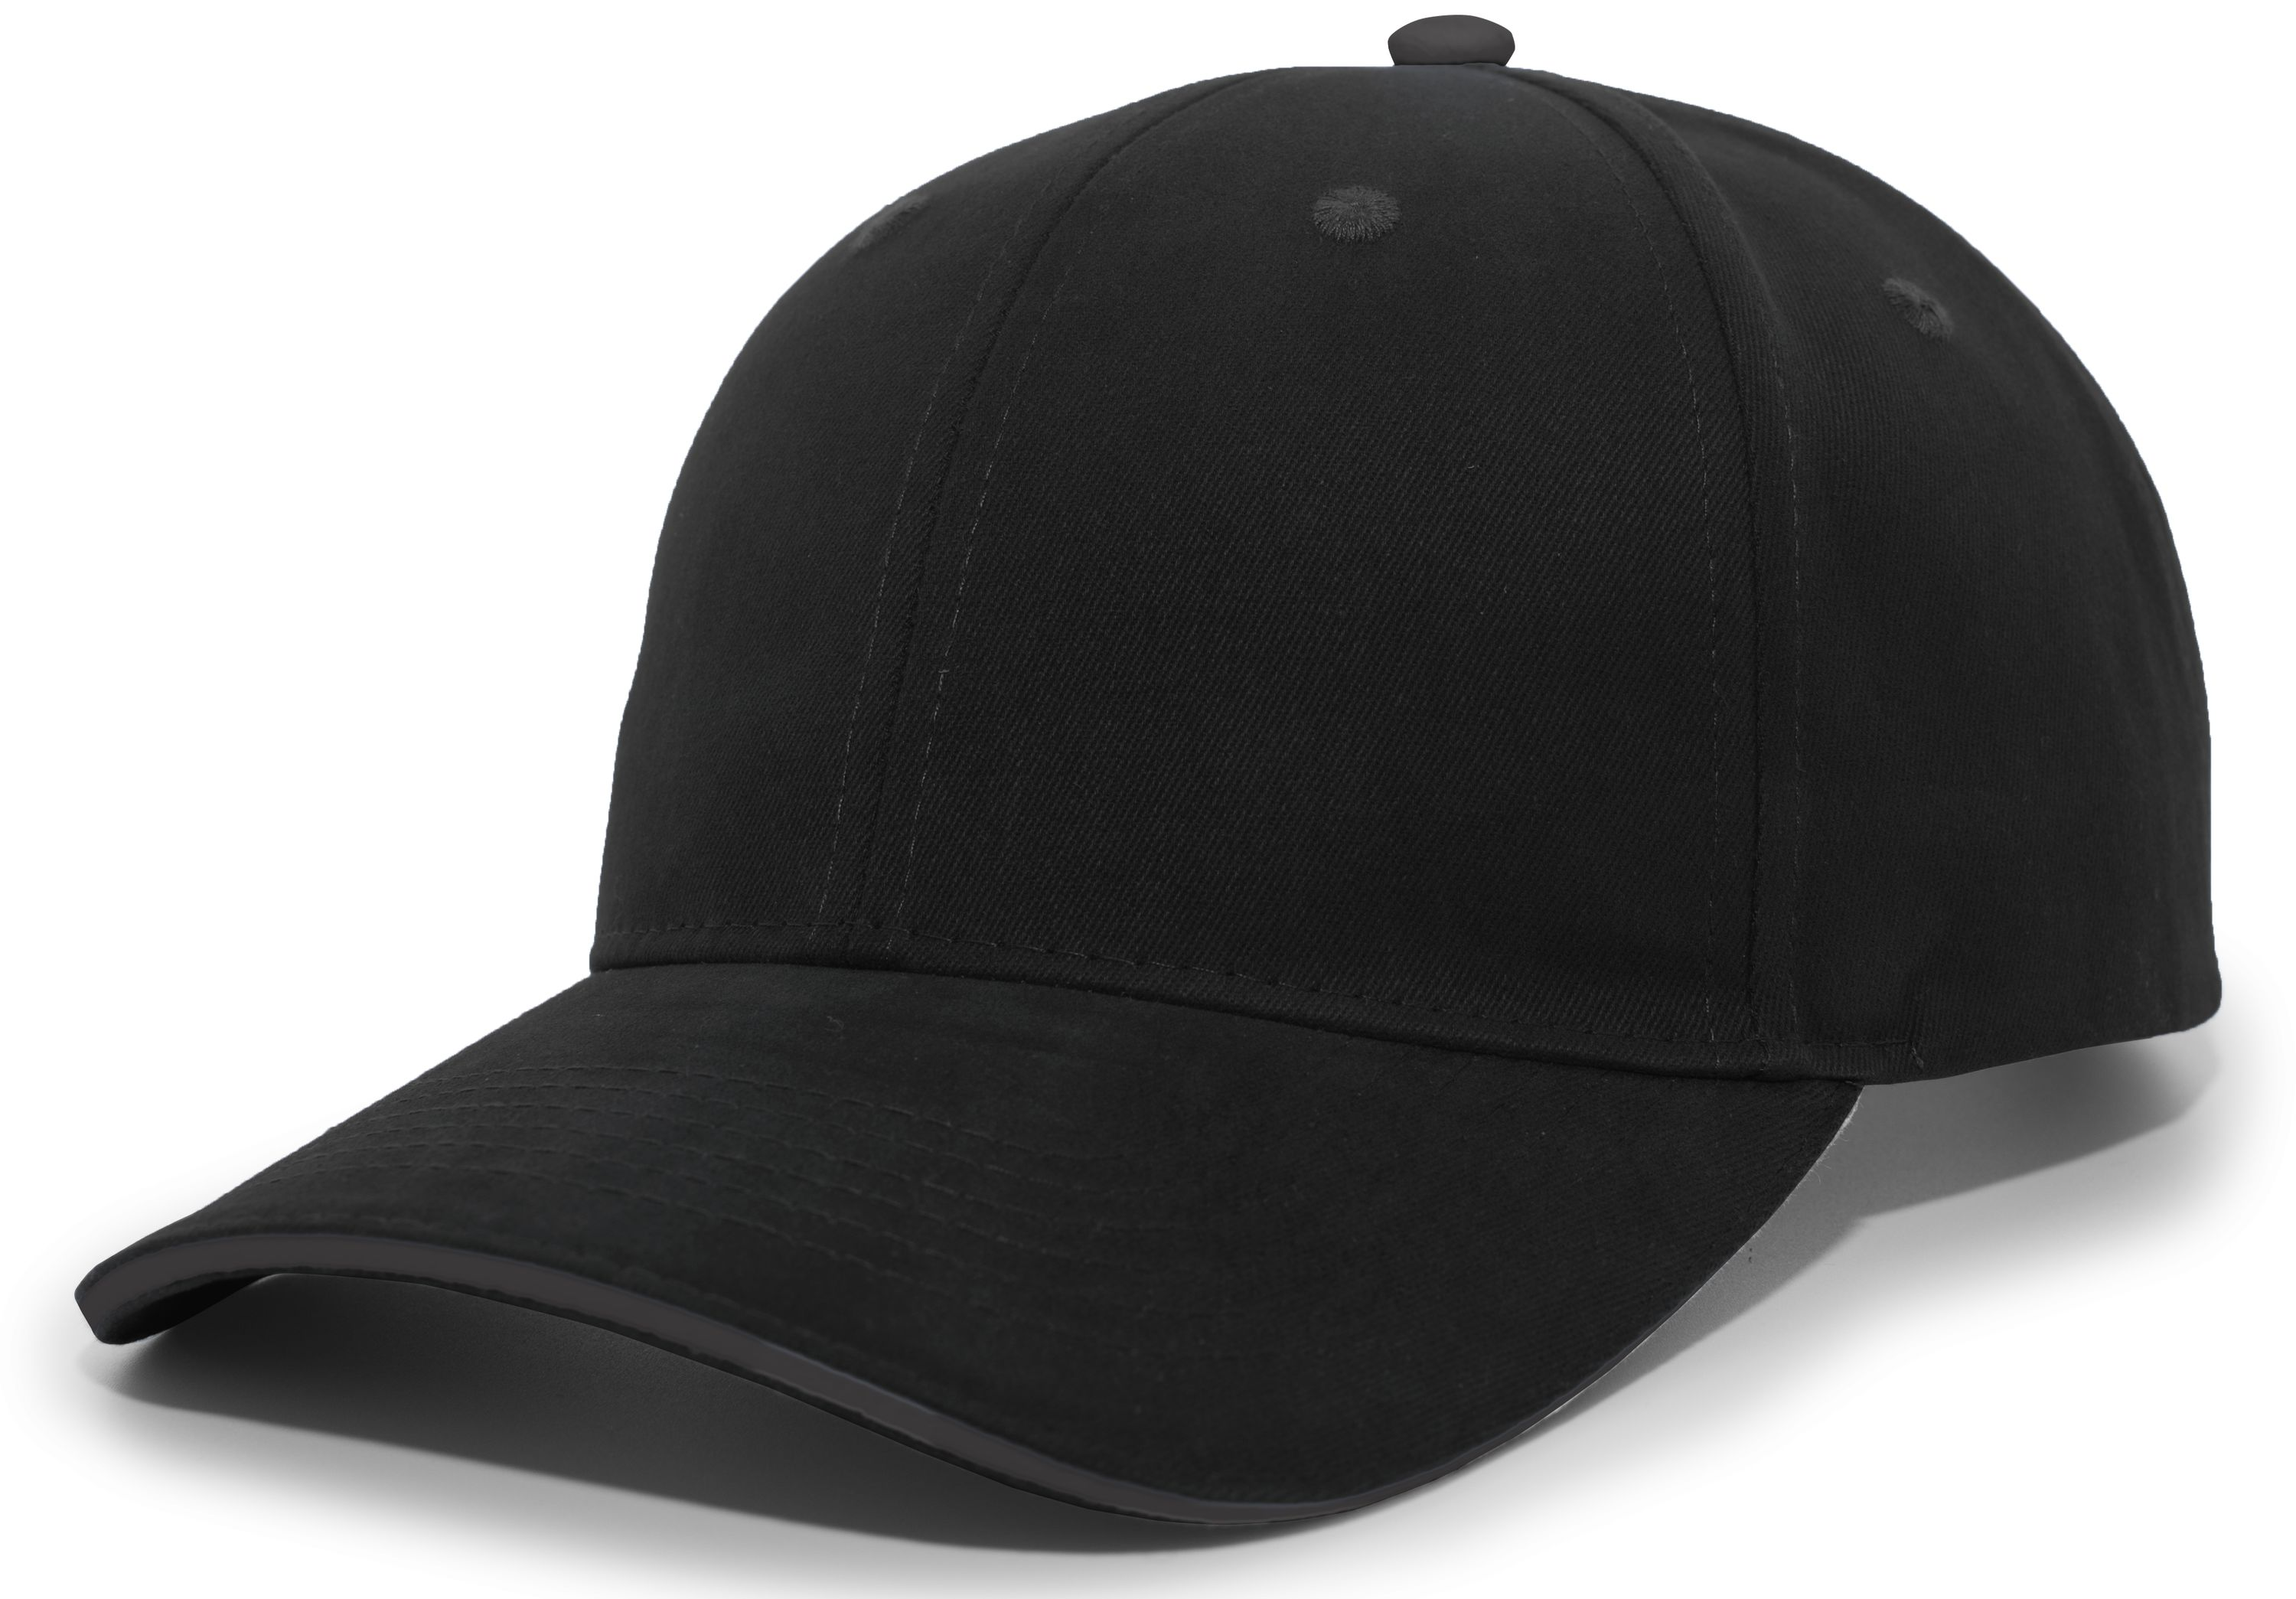 Brushed Twill Cap With Sandwich Bill - BLACK/CHARCOAL